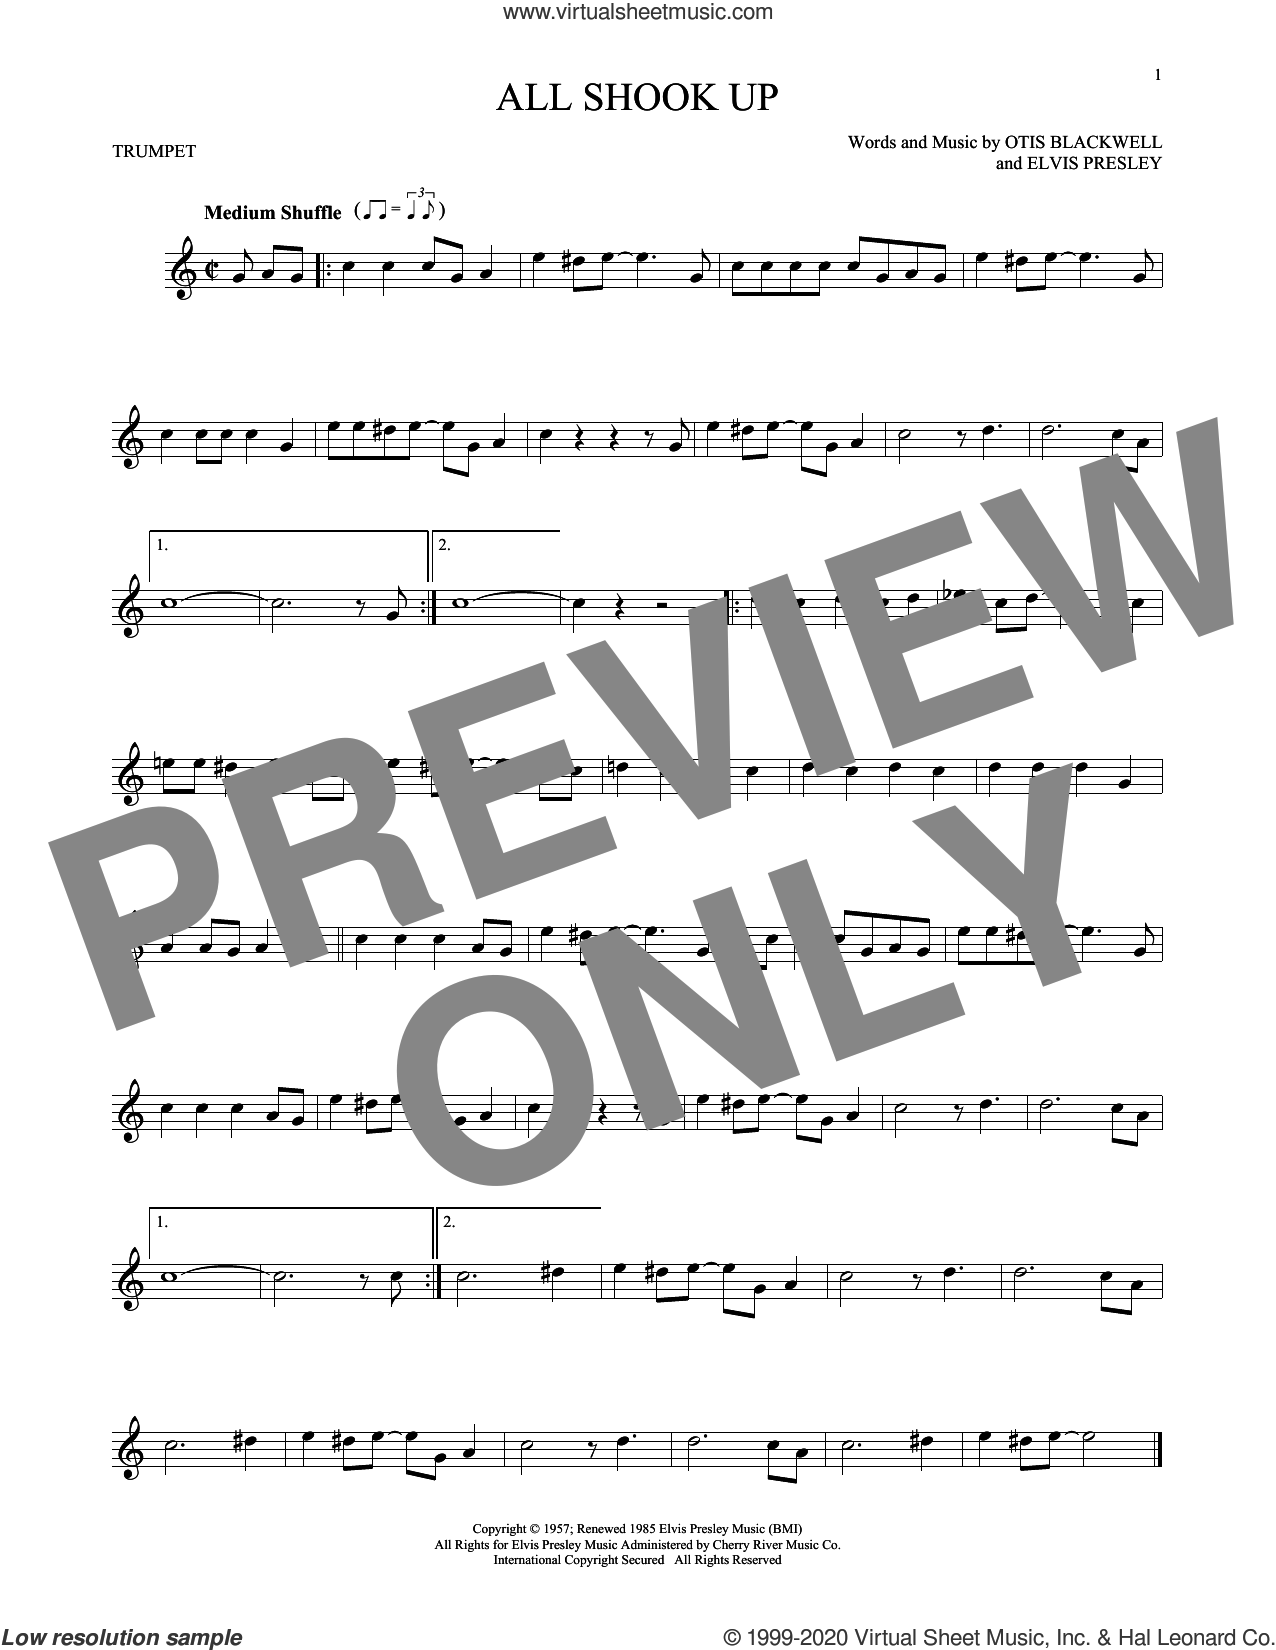 All Shook Up sheet music for trumpet solo by Elvis Presley, Suzi Quatro and Otis Blackwell, intermediate skill level